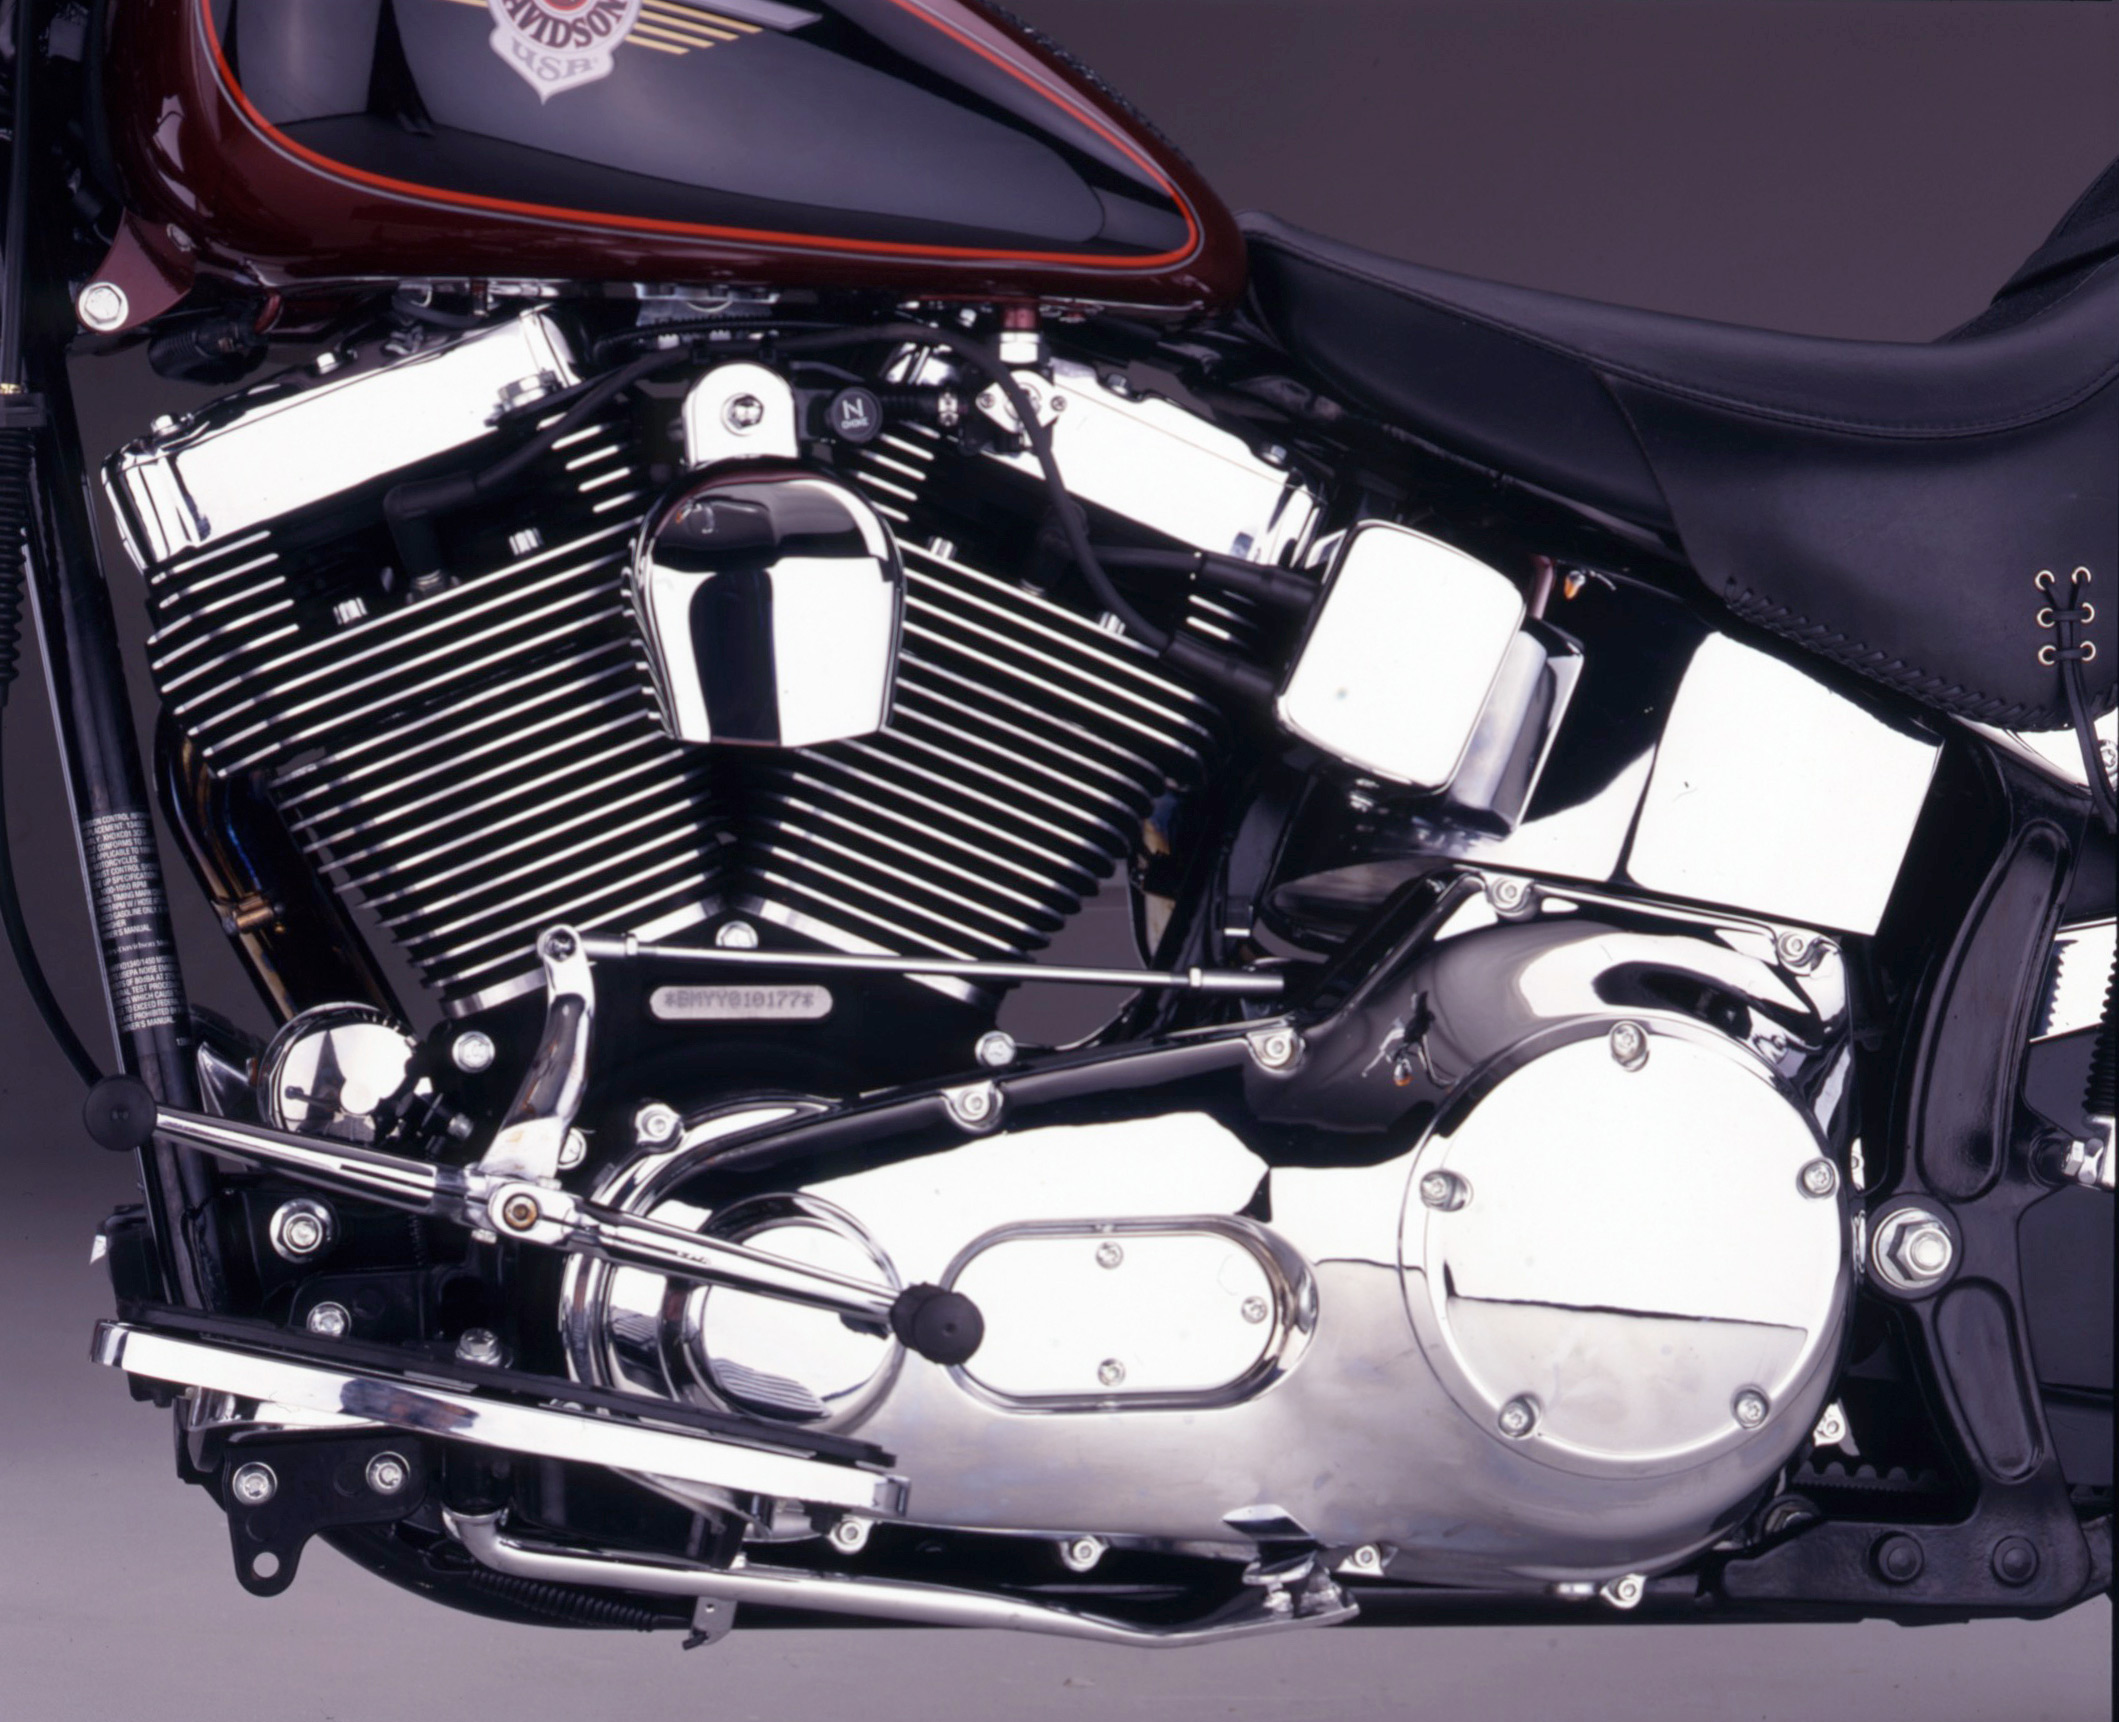 Harley-Davidson Fat Boy Review, Road Test Data   Cycle World